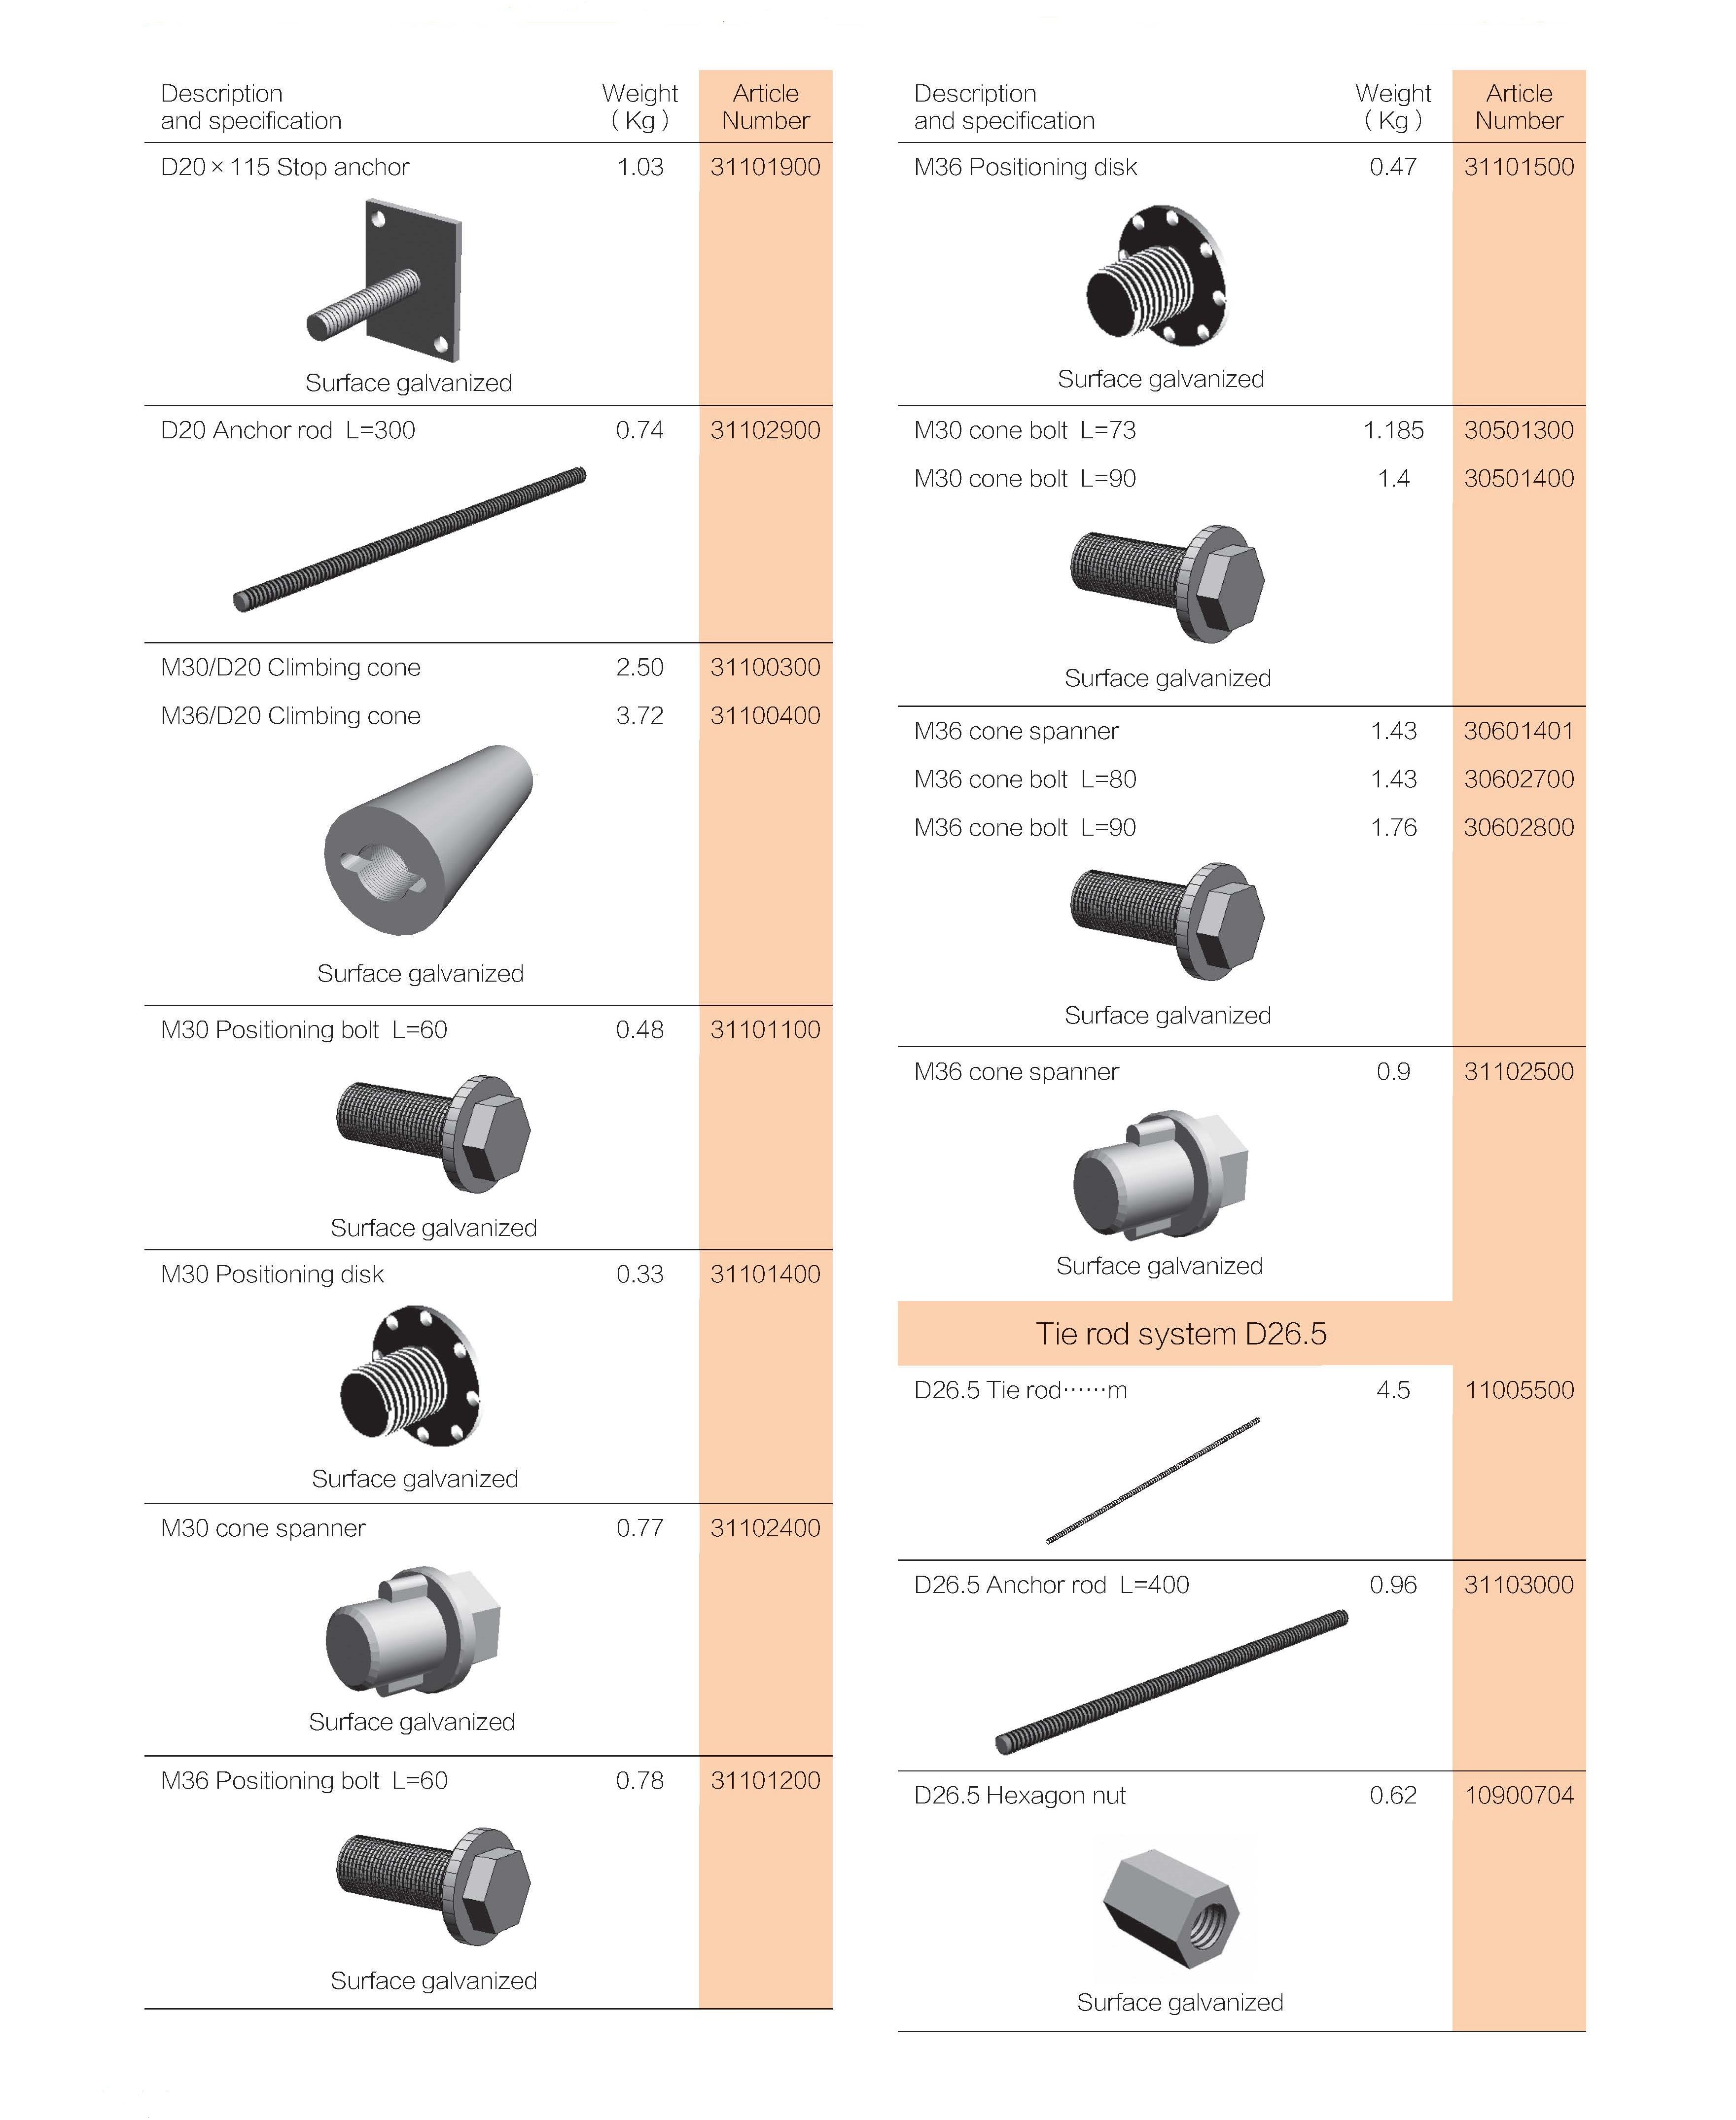 NGM_Formwork_Accessories3